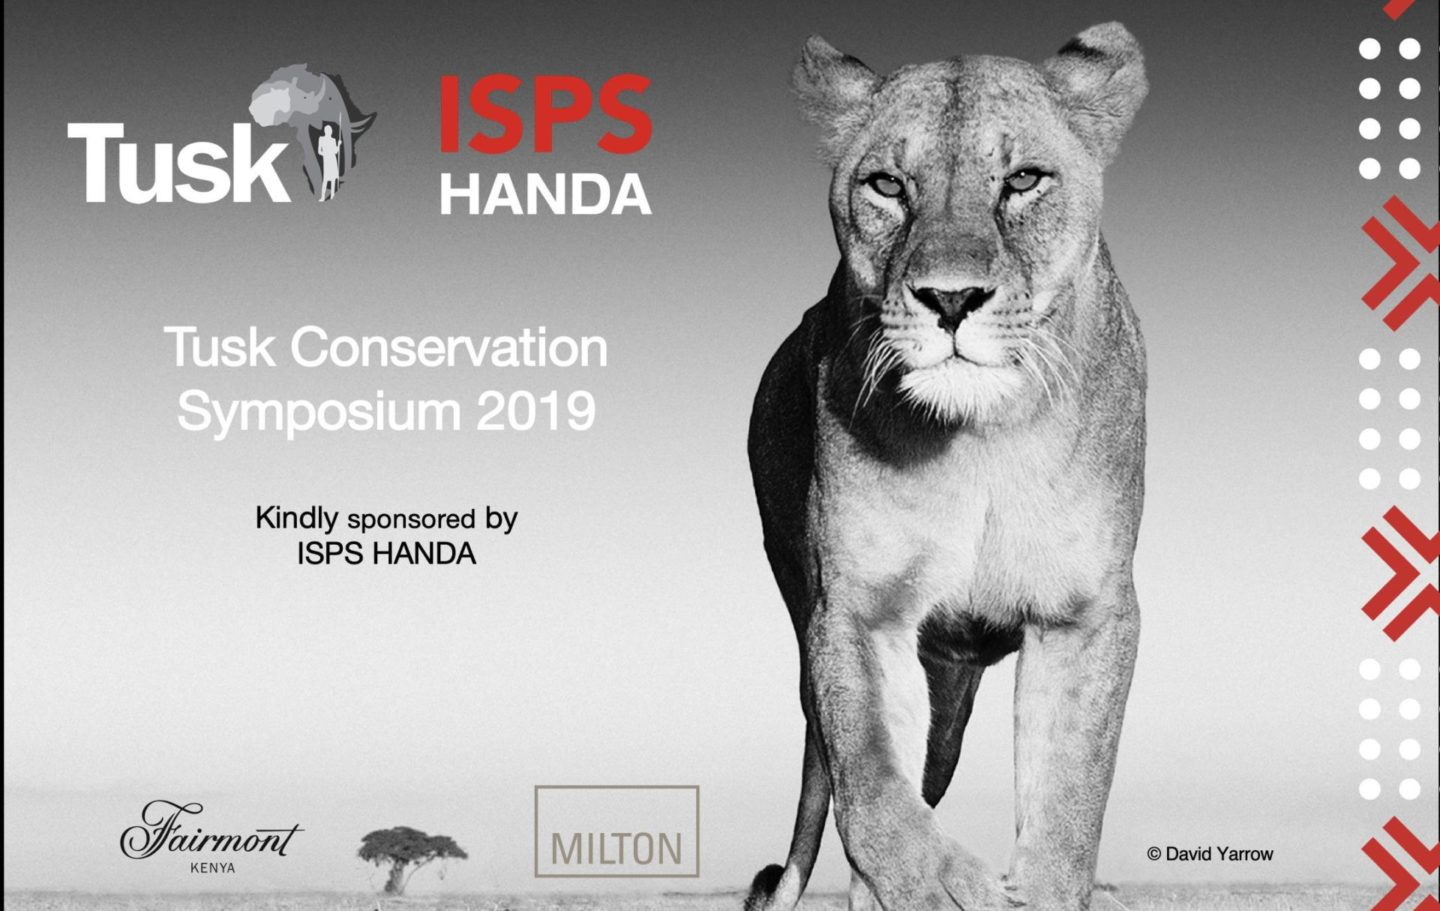 Tusk Conservation Symposium 2019